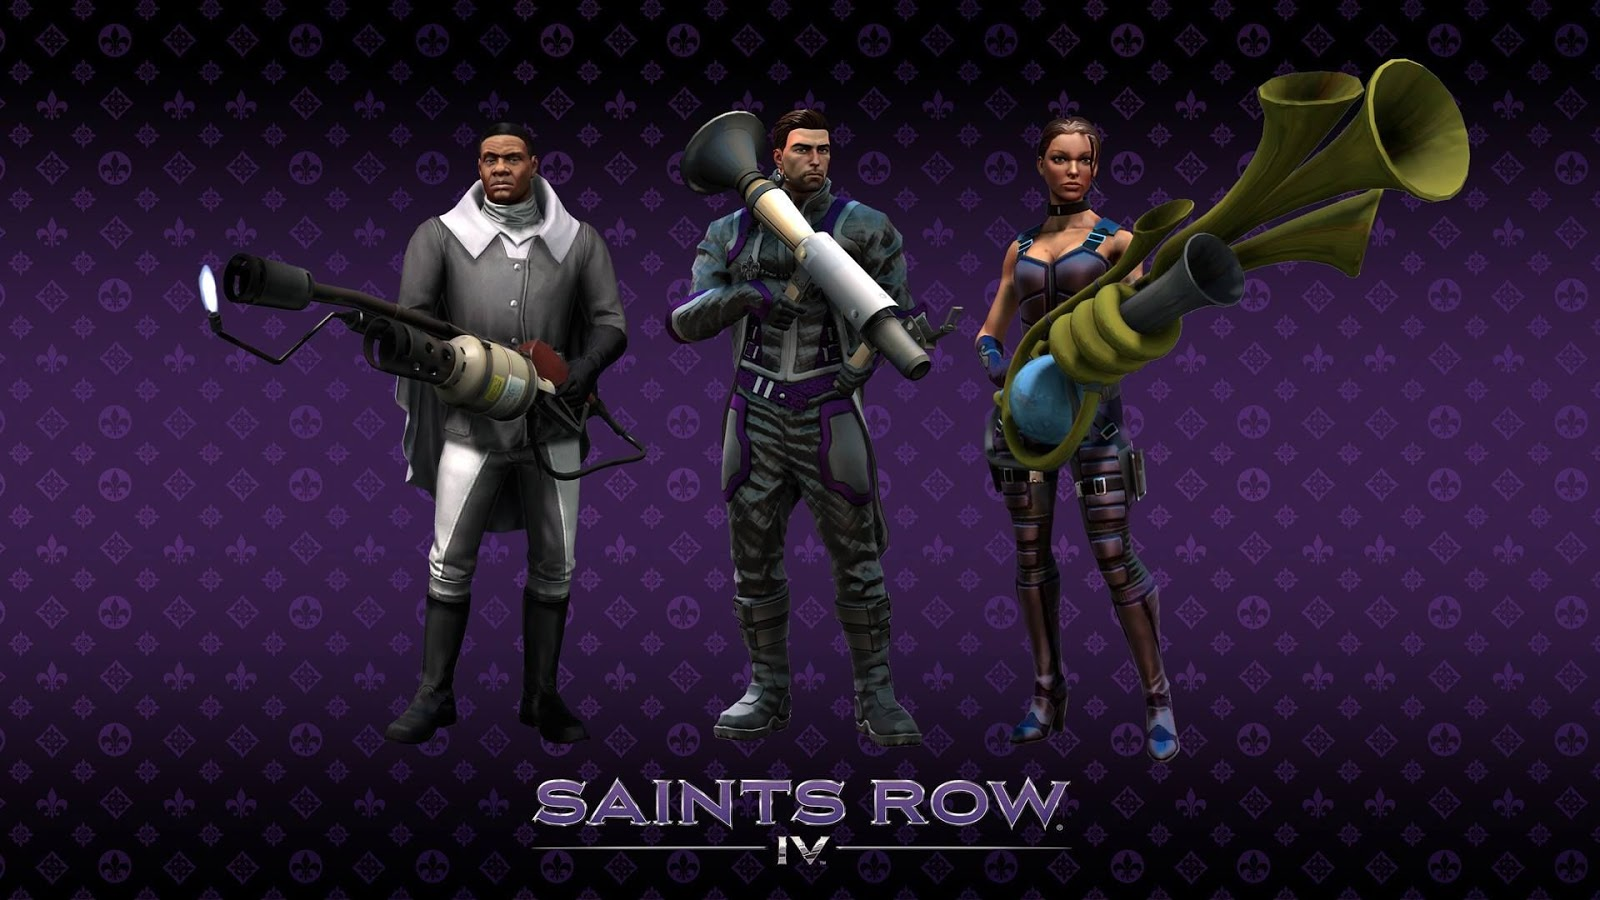 Saints Row 4 Wallpapers: Saints Row 4 HD Wallpapers